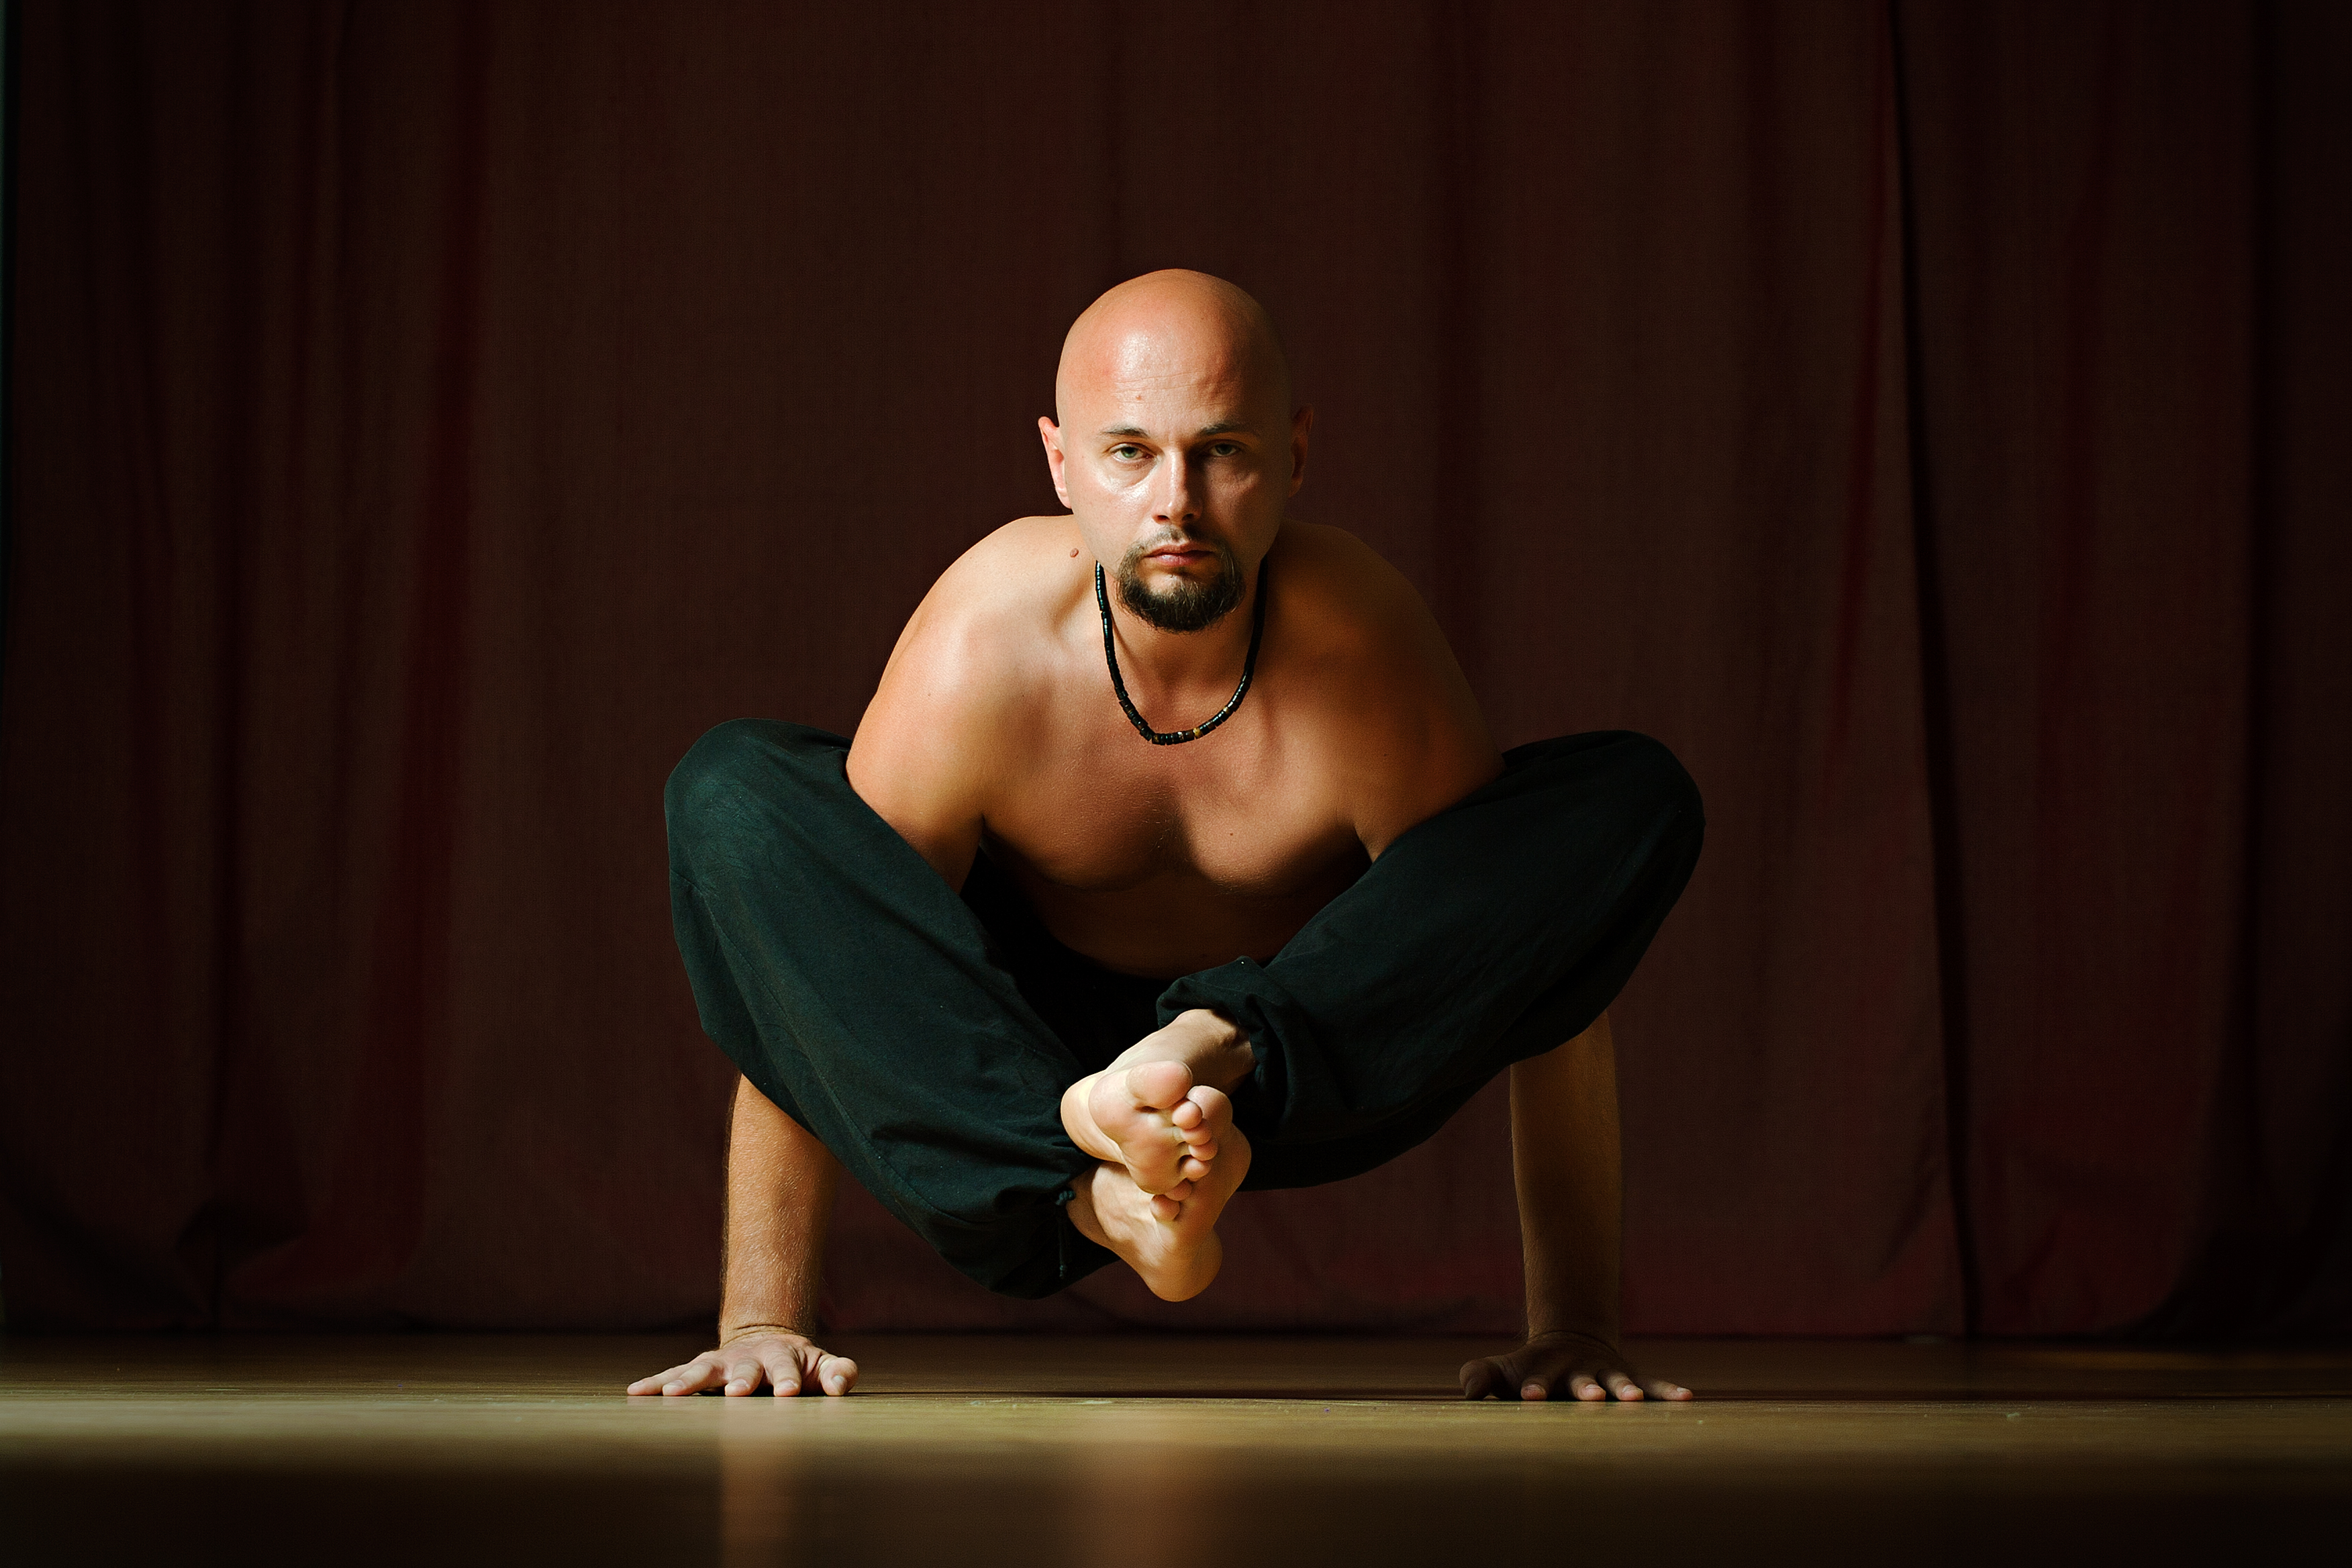 Anatoliy Pakhomov the founder of Vajra yoga Kiev